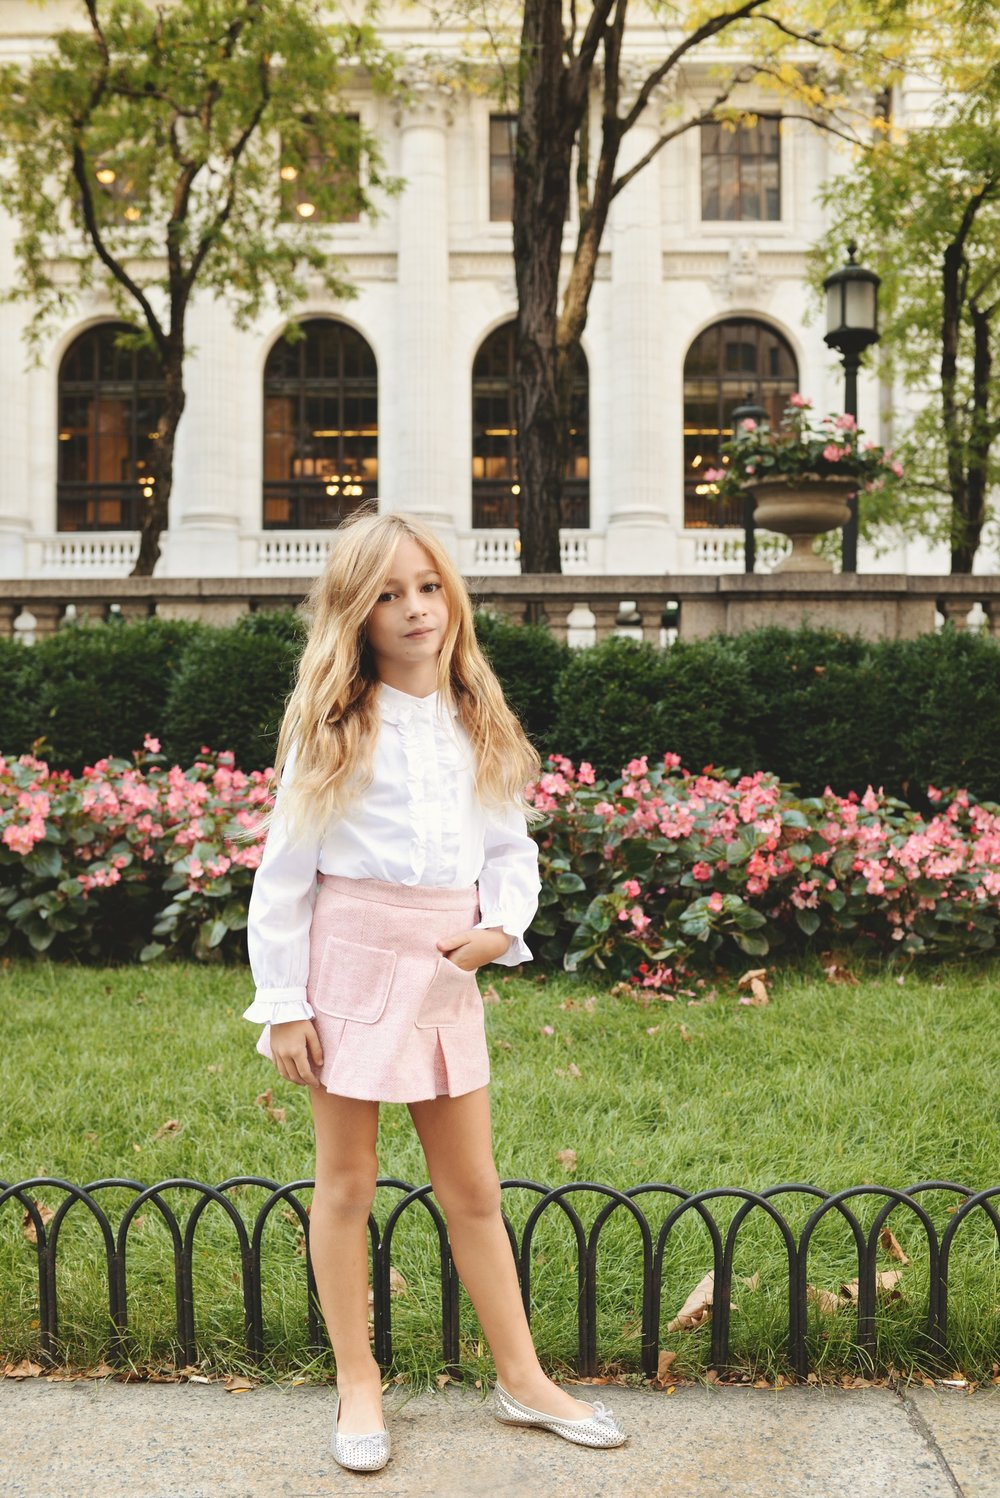 Enfant+Street+Style+by+Gina+Kim+Photography-47.jpeg